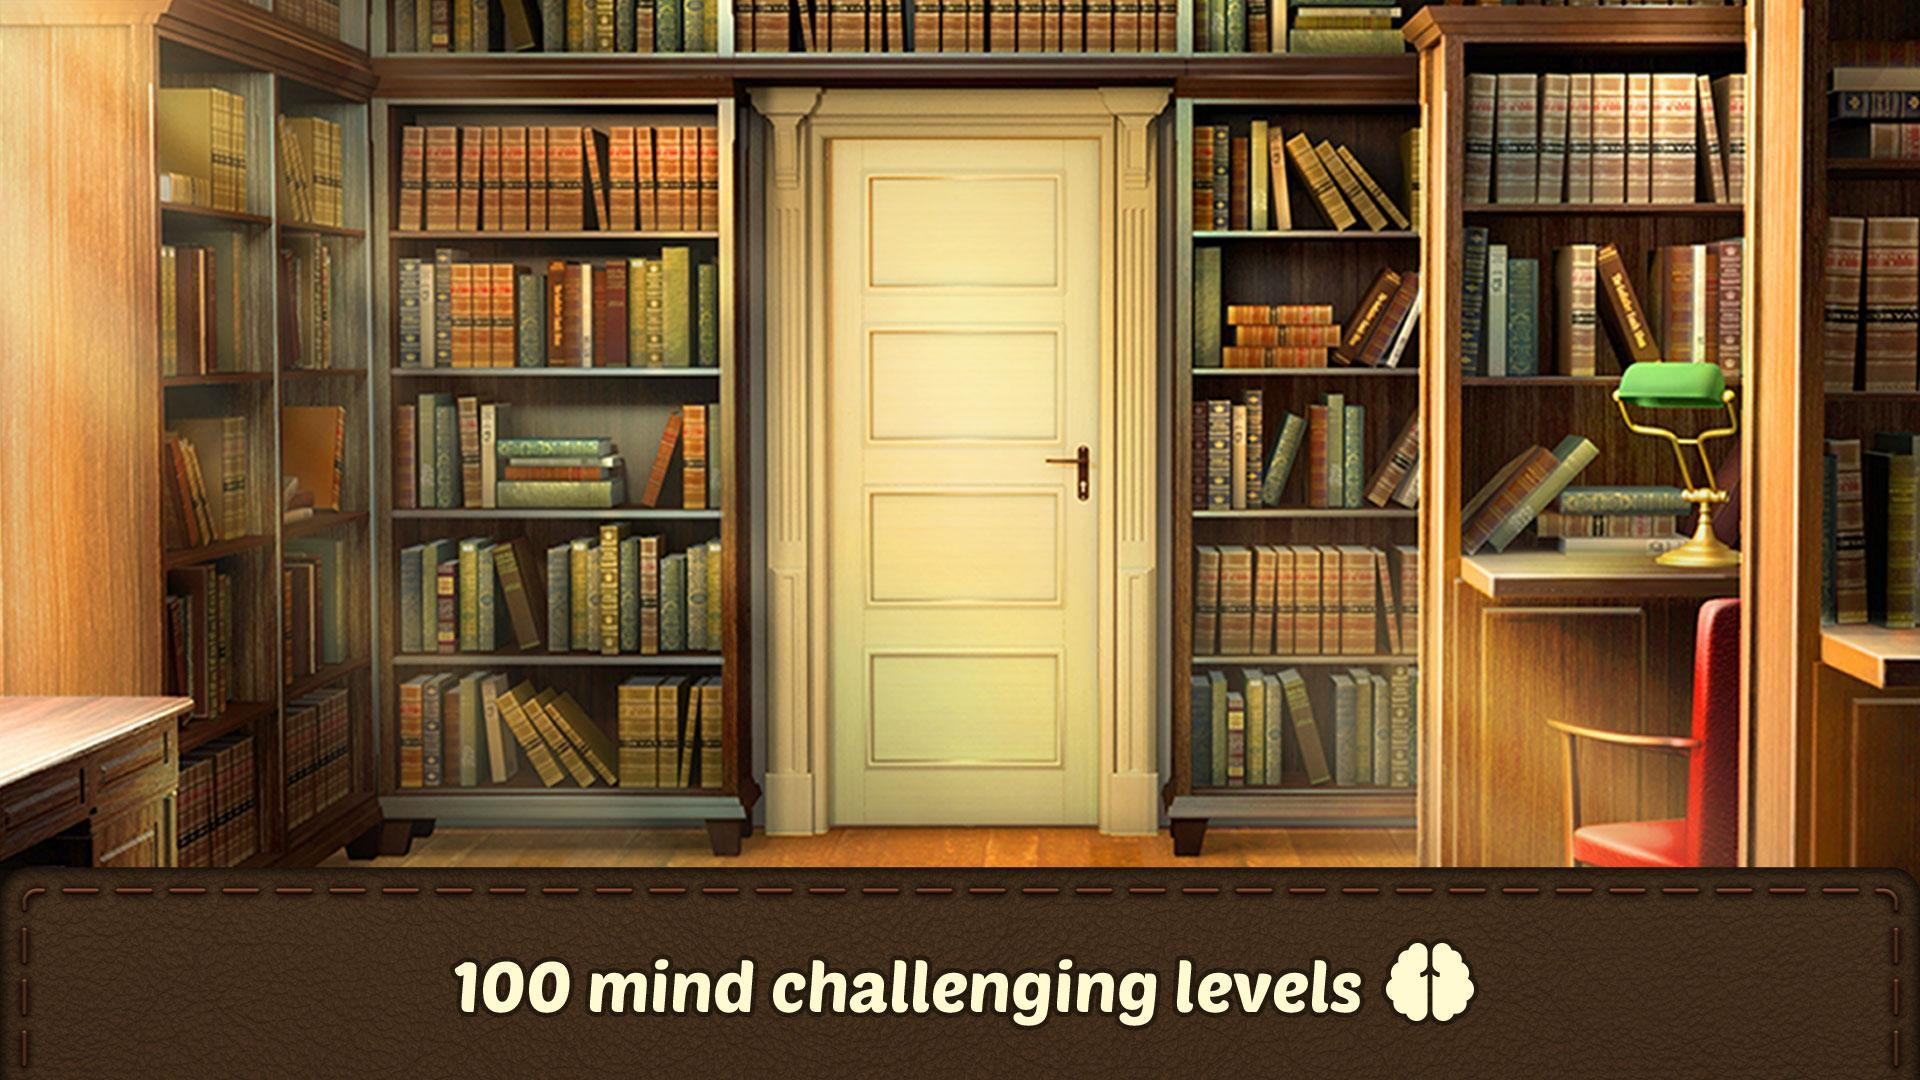 100 Doors Games 2019: Escape from School for Android - APK